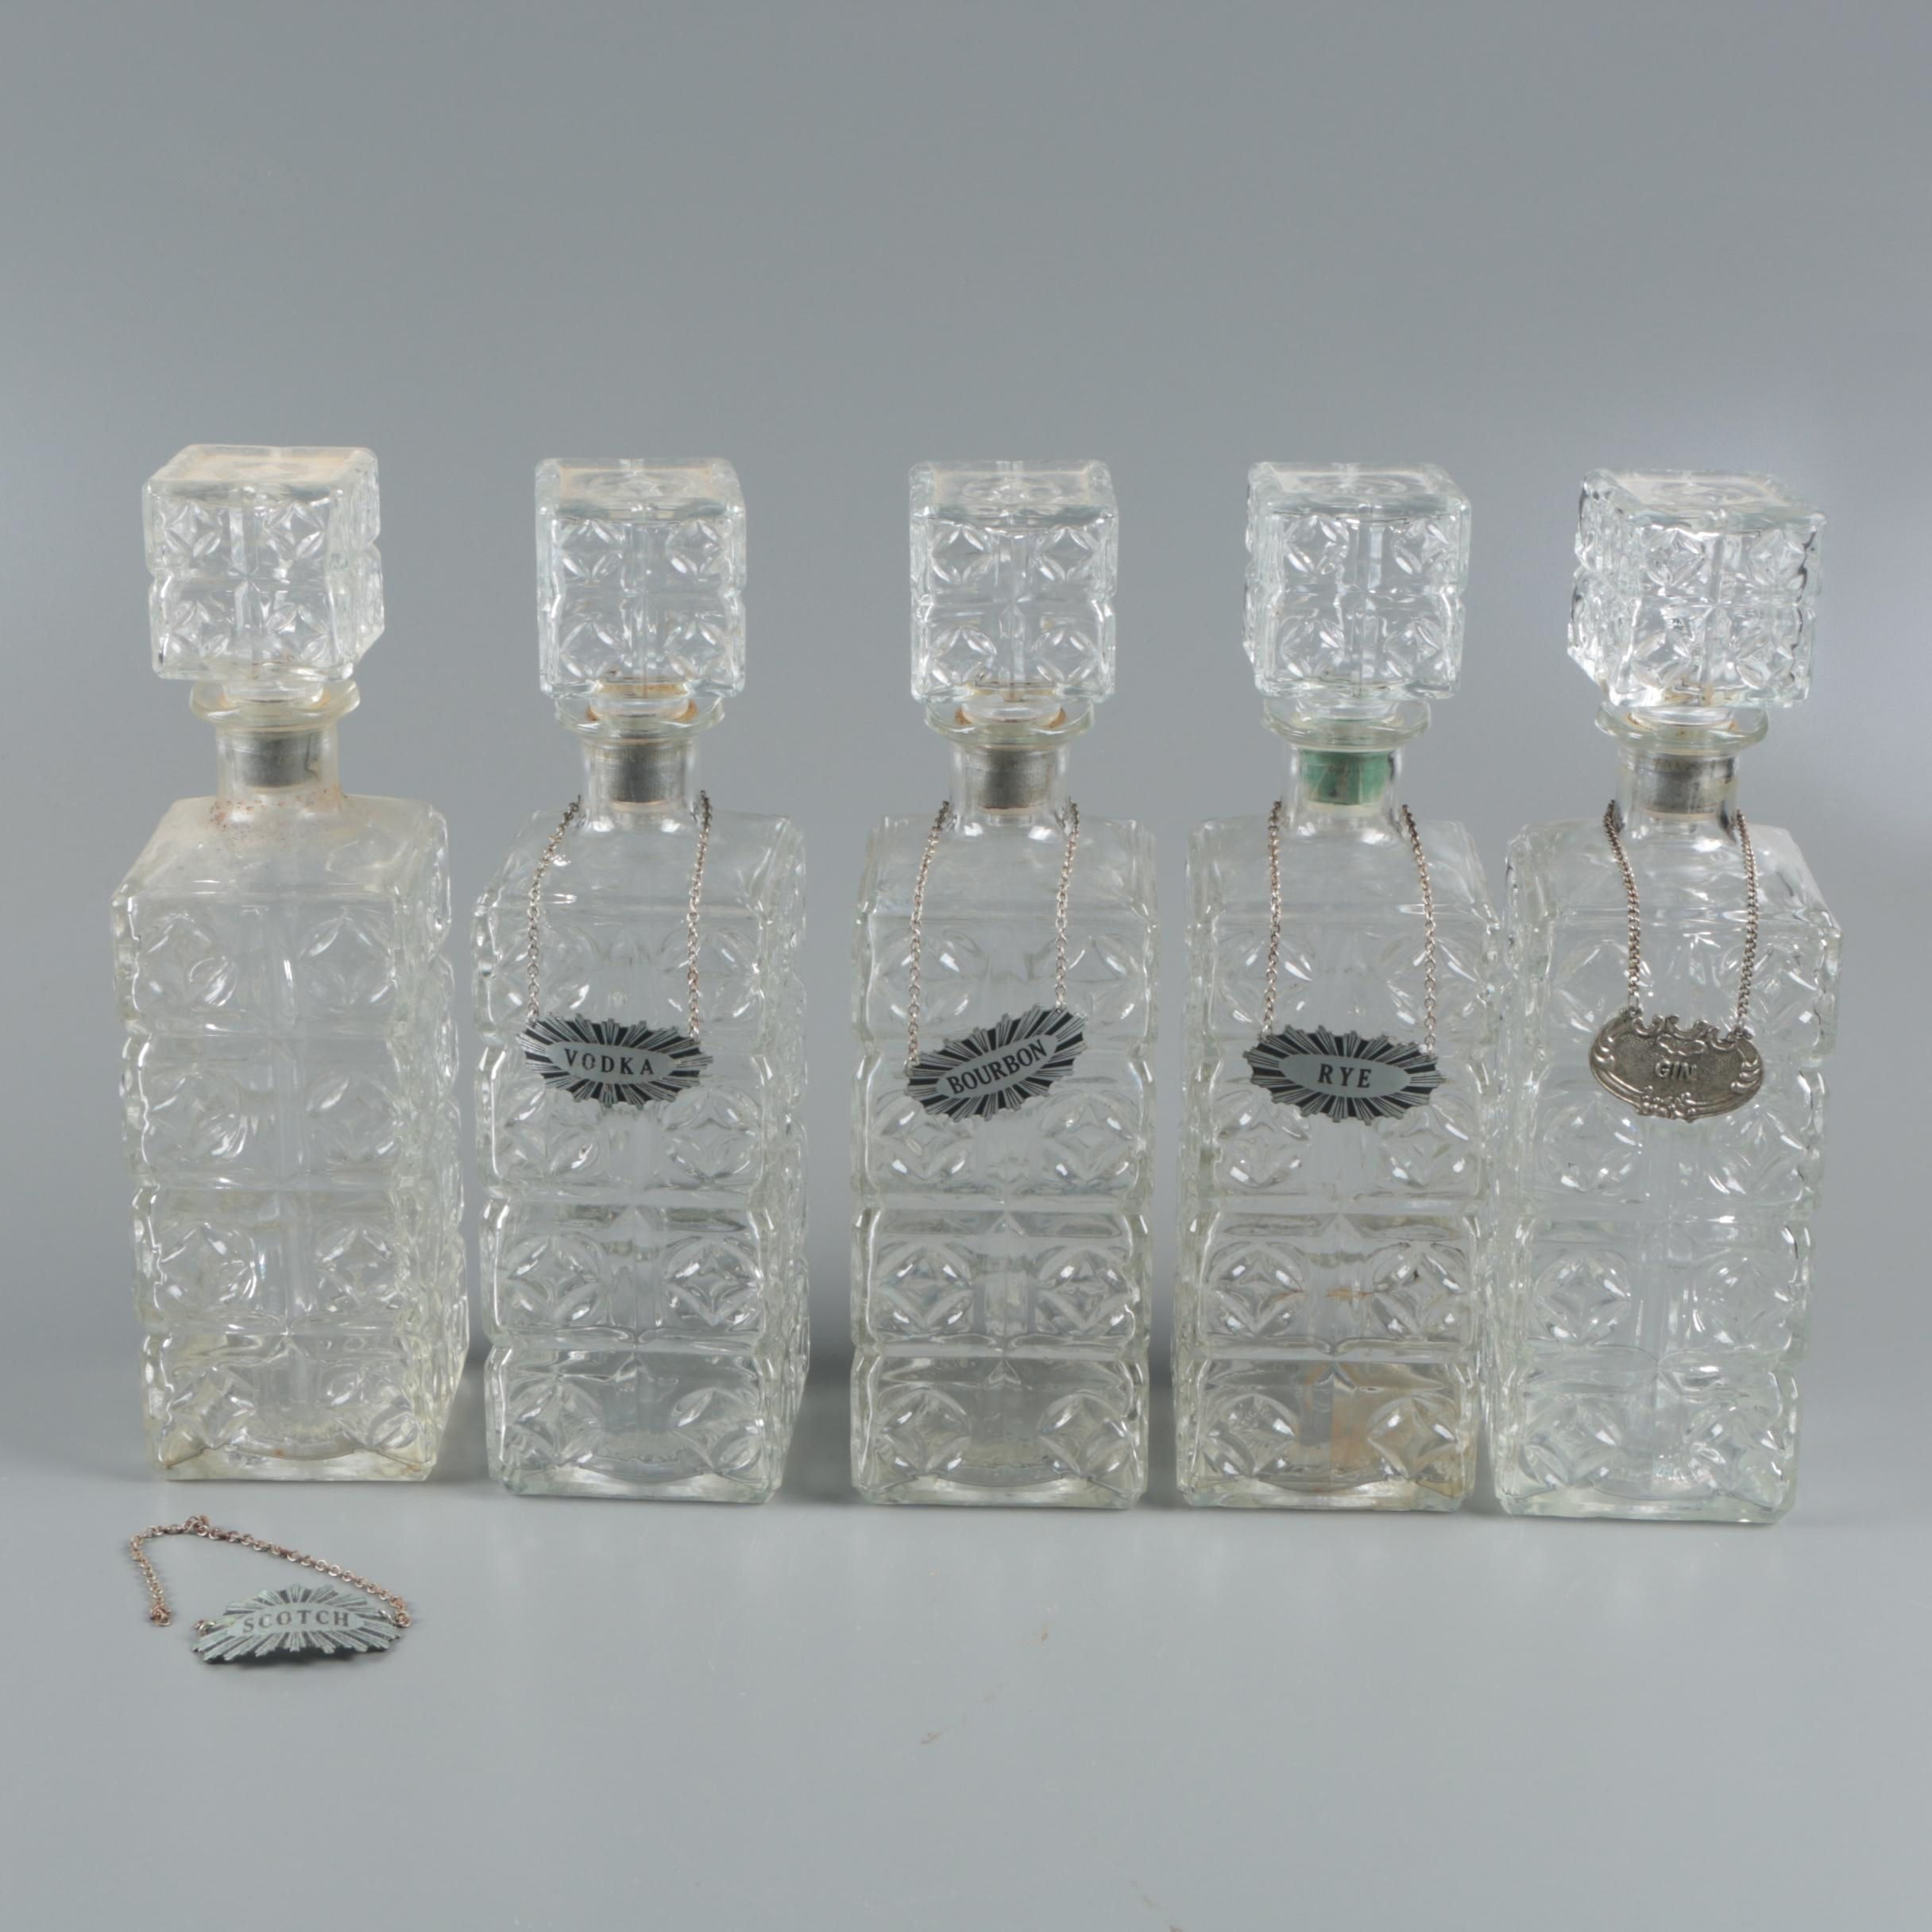 1960s Thatcher Glass Company Glass Liquor Decanters with Labels